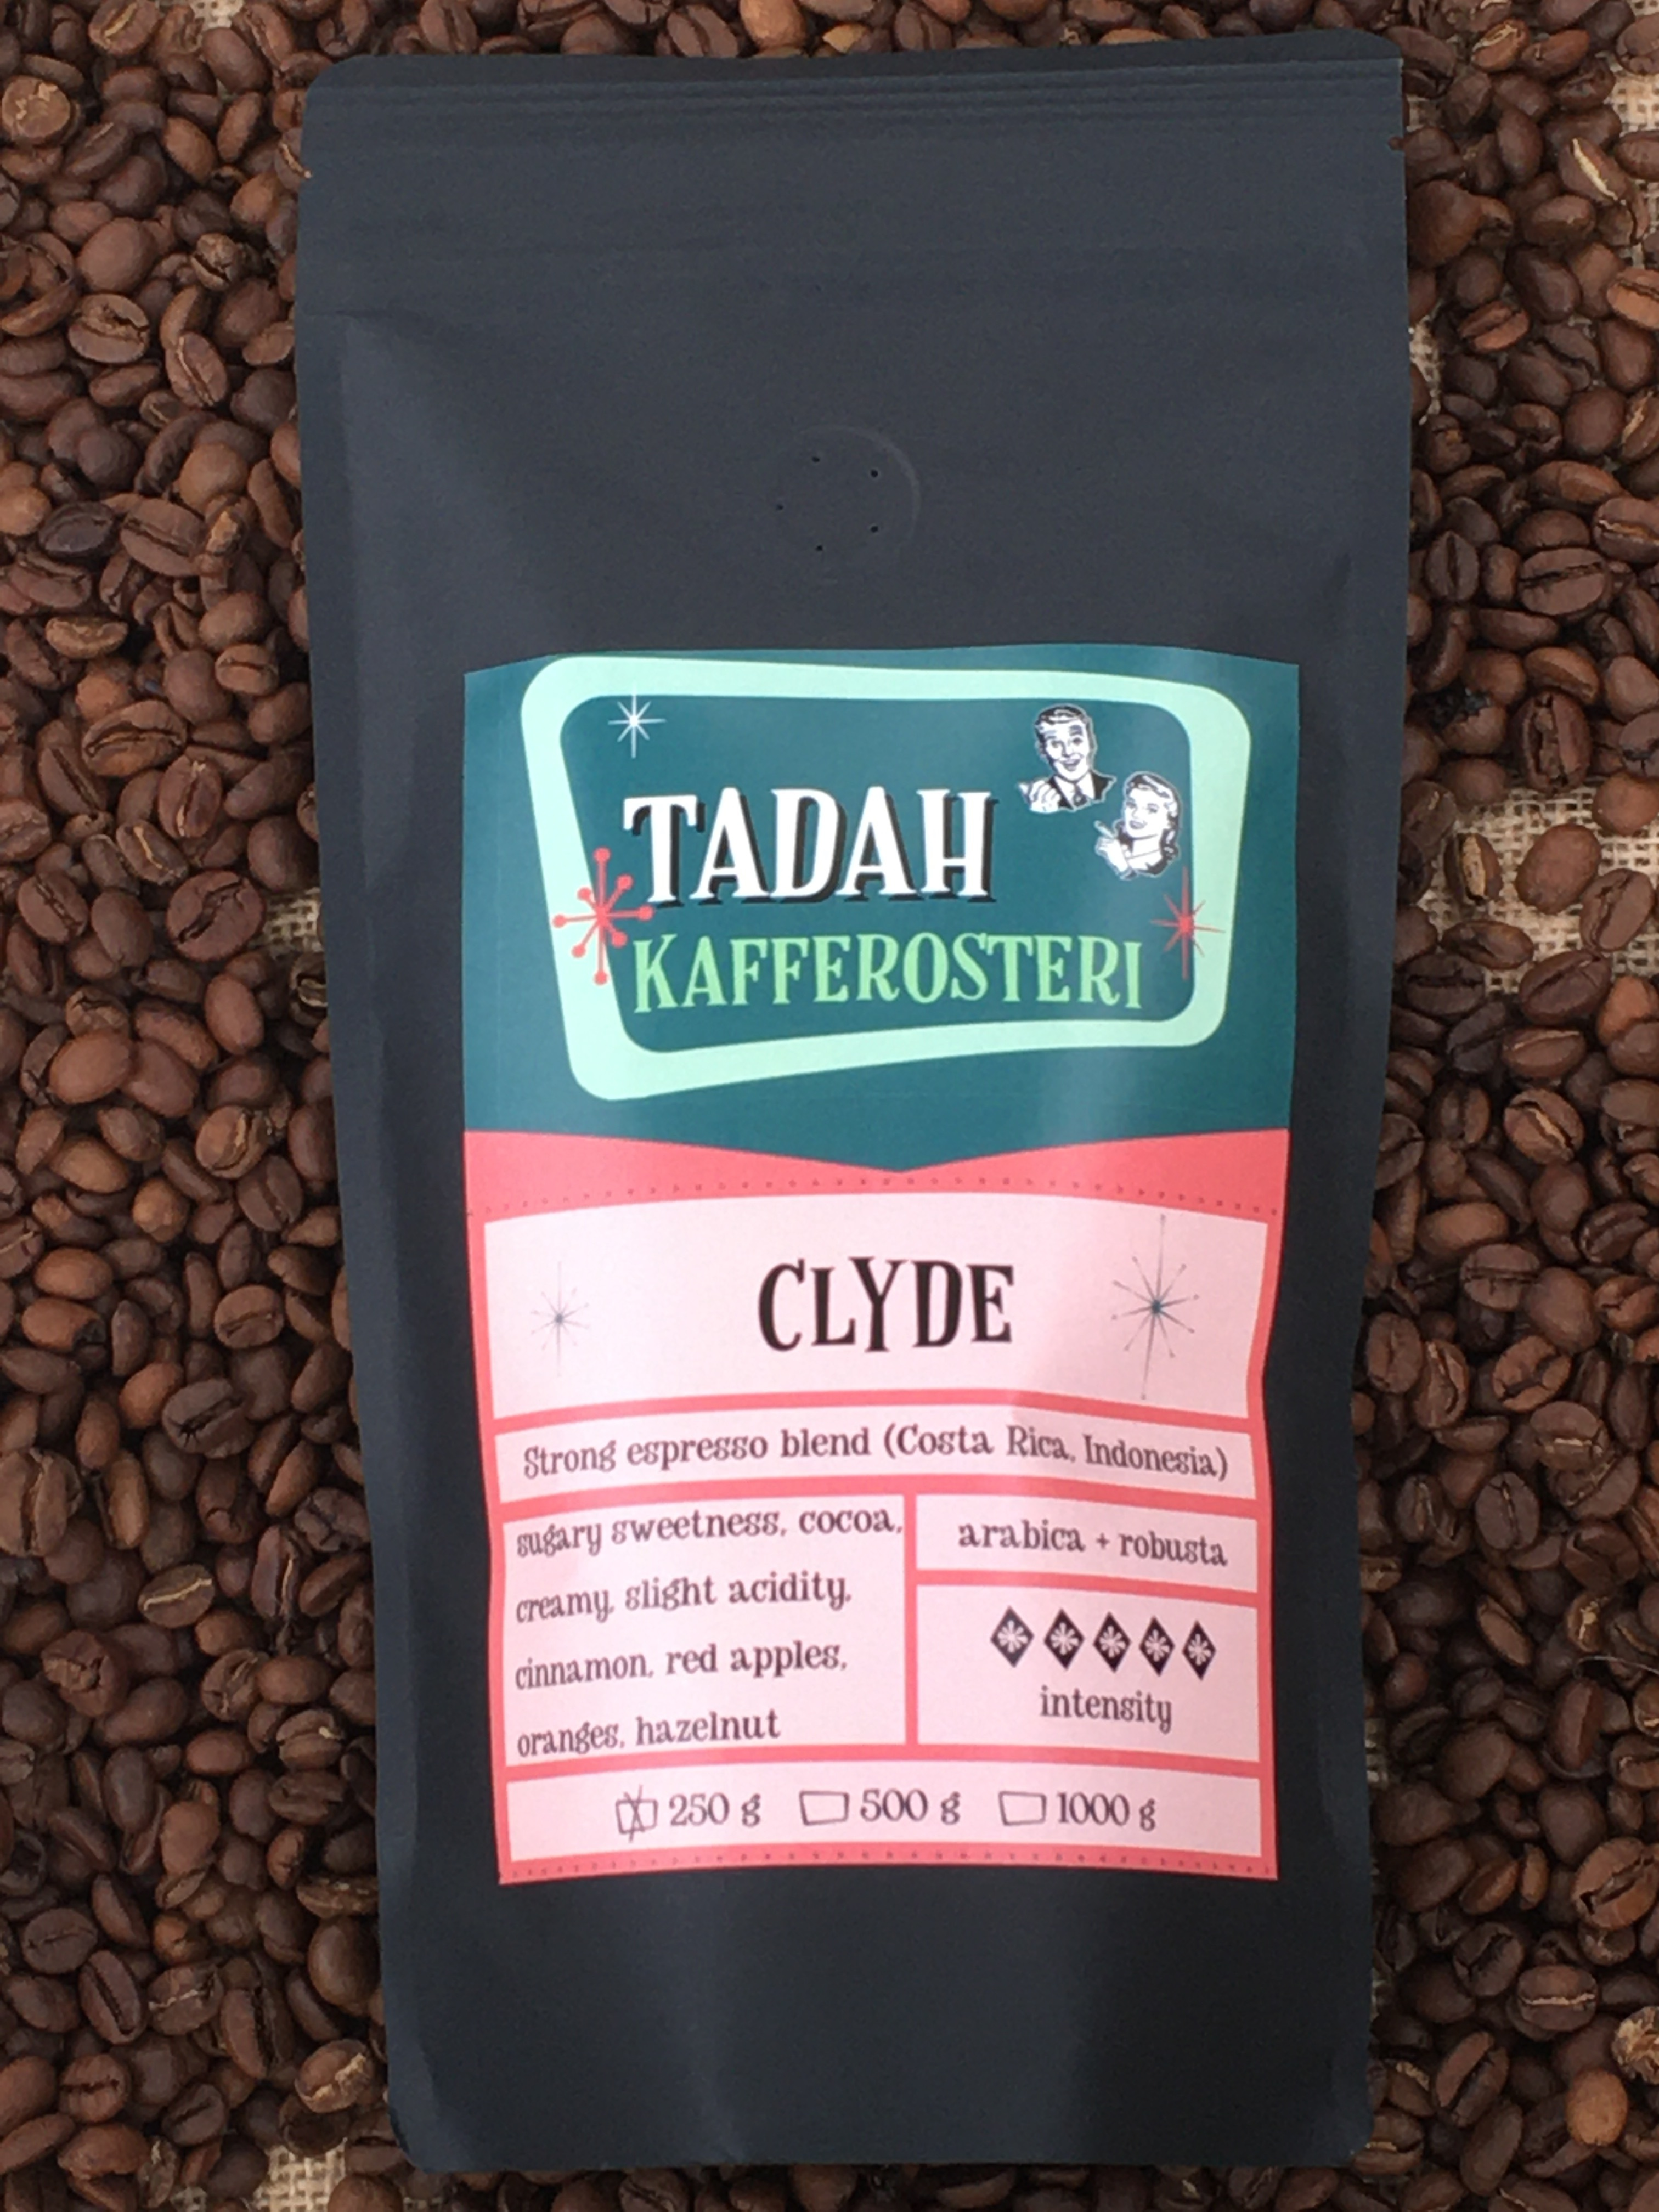 Clyde - the strong espresso blend